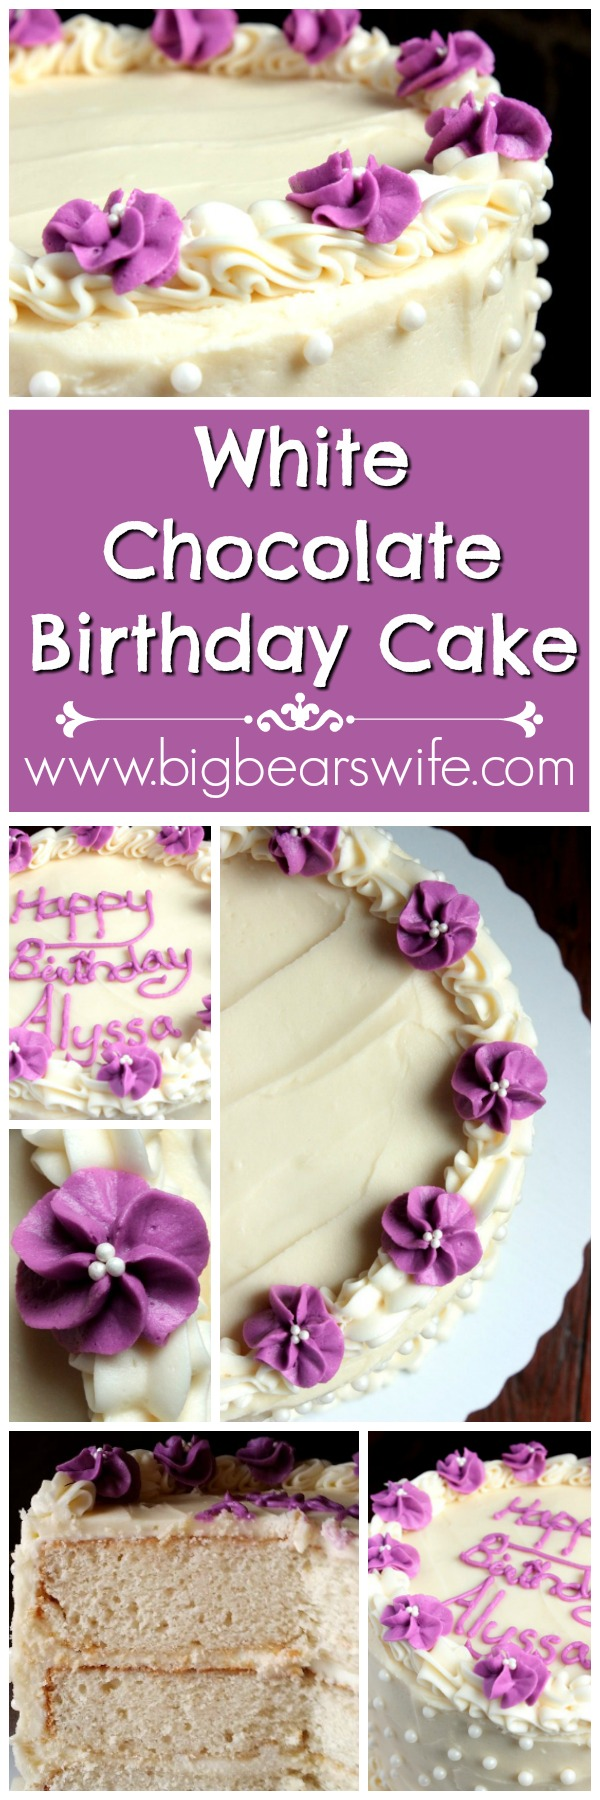 White Chocolate Birthday Cake Big Bears Wife